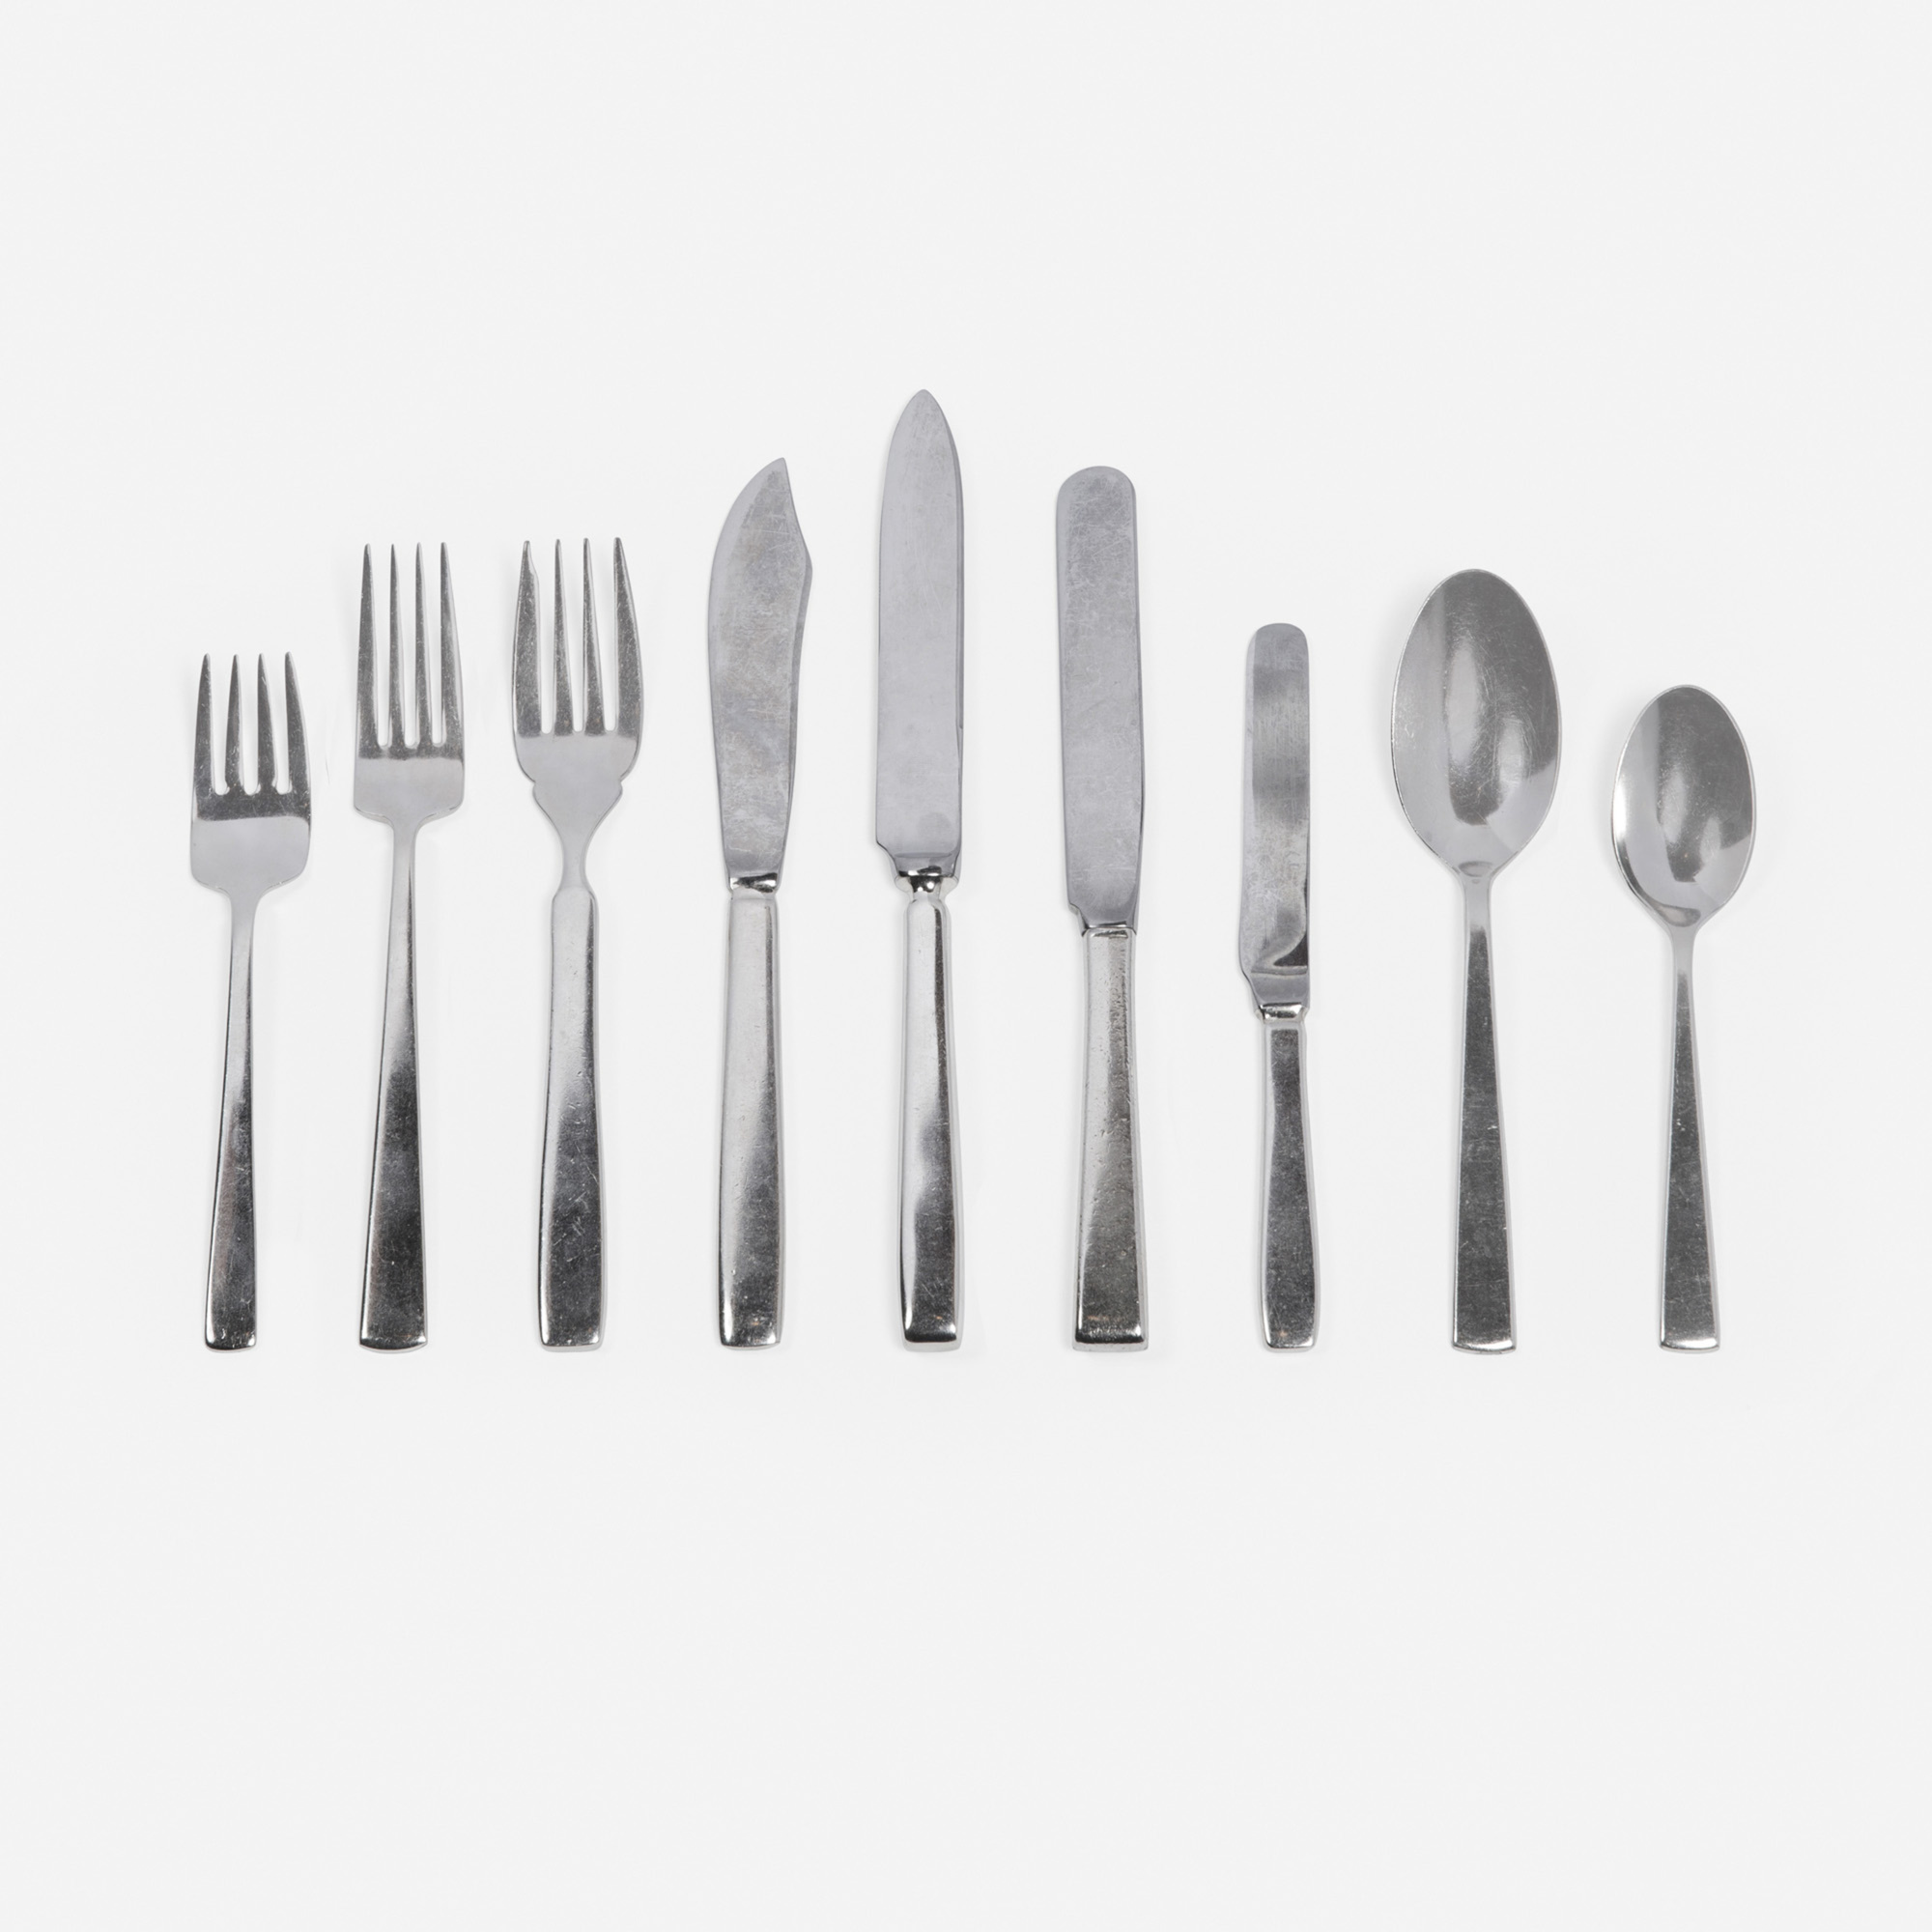 630: Garth and Ada Louise Huxtable / Four Seasons Luncheon flatware from the Pool Room, service for twelve (1 of 1)